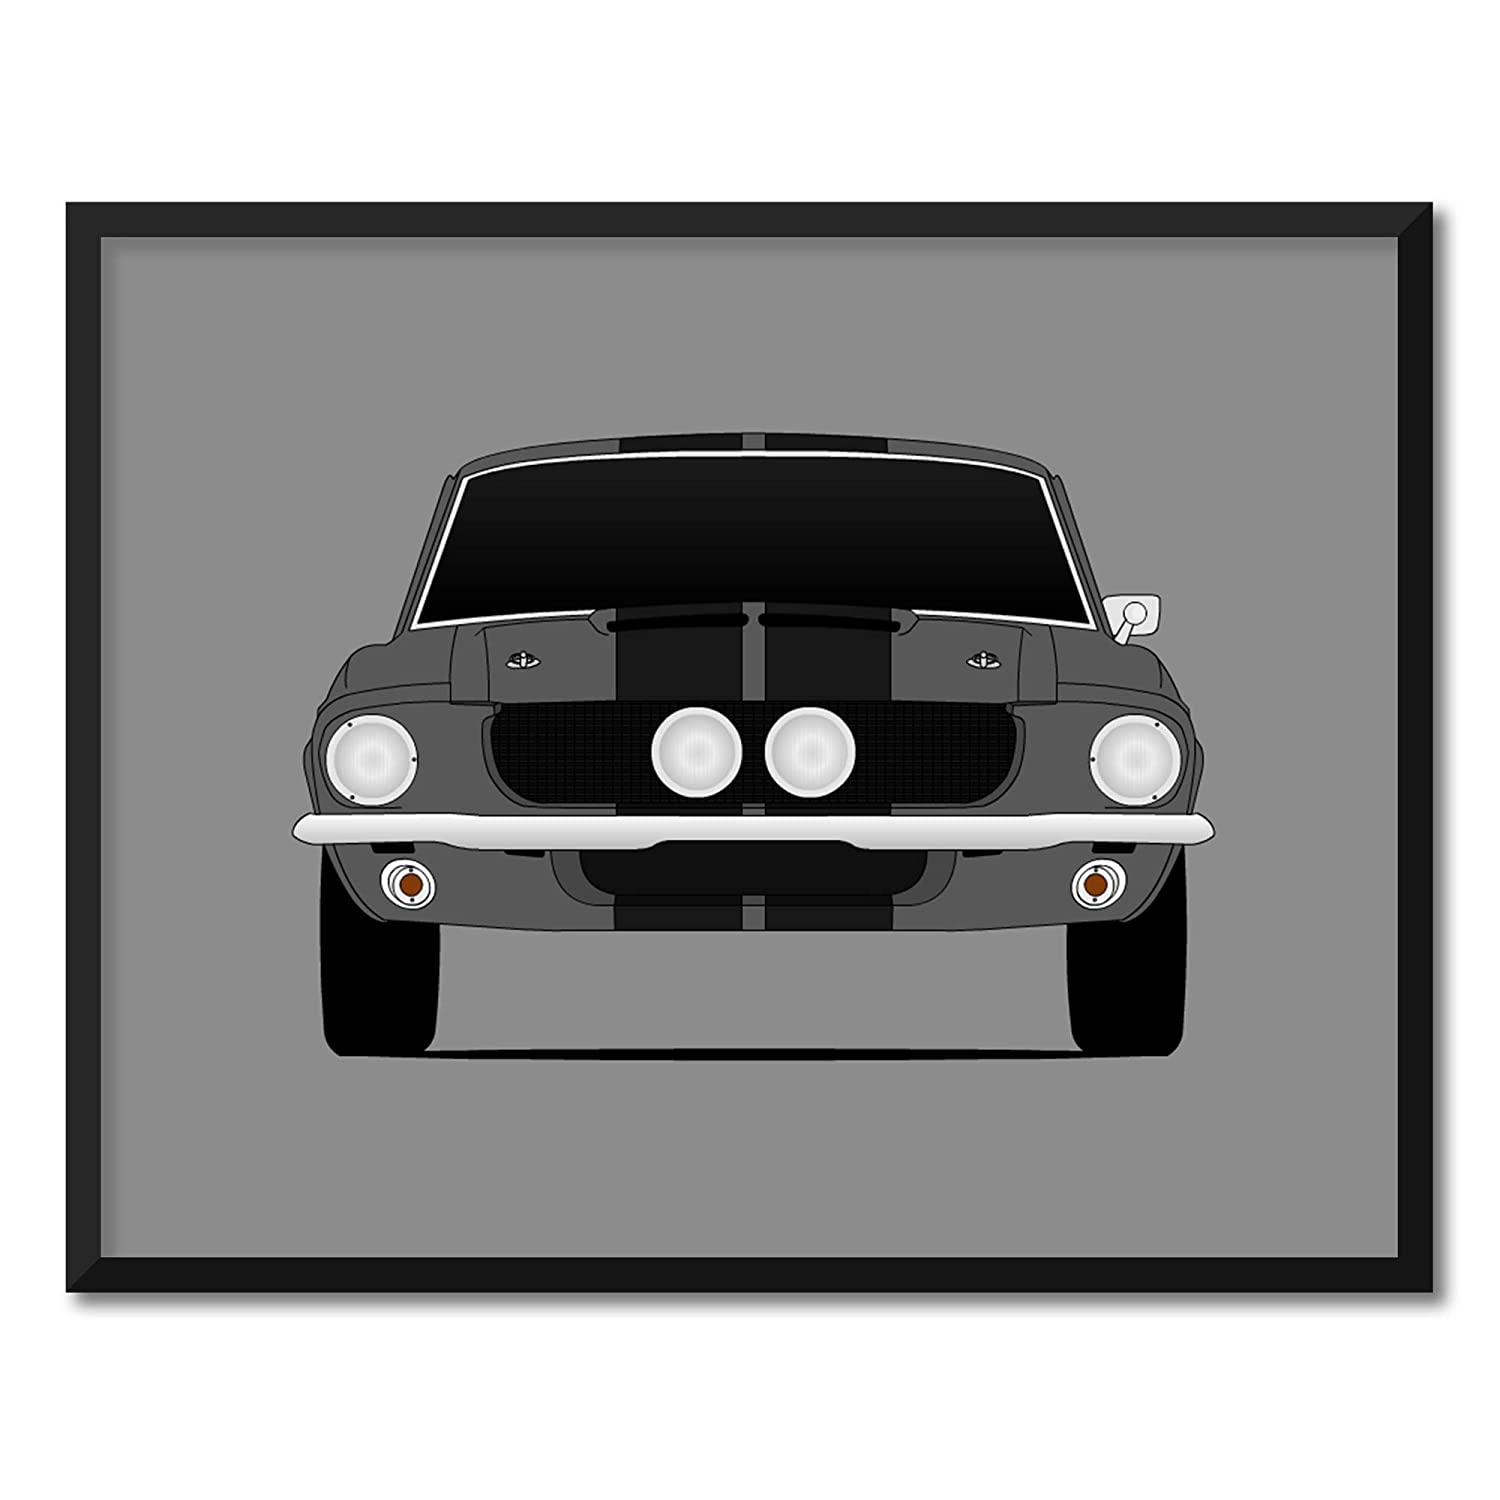 Get your favorite muscle car illustration poster. The best gift for car enthusiast 1967 Shelby Cobra 427 SC Roadster matte poster